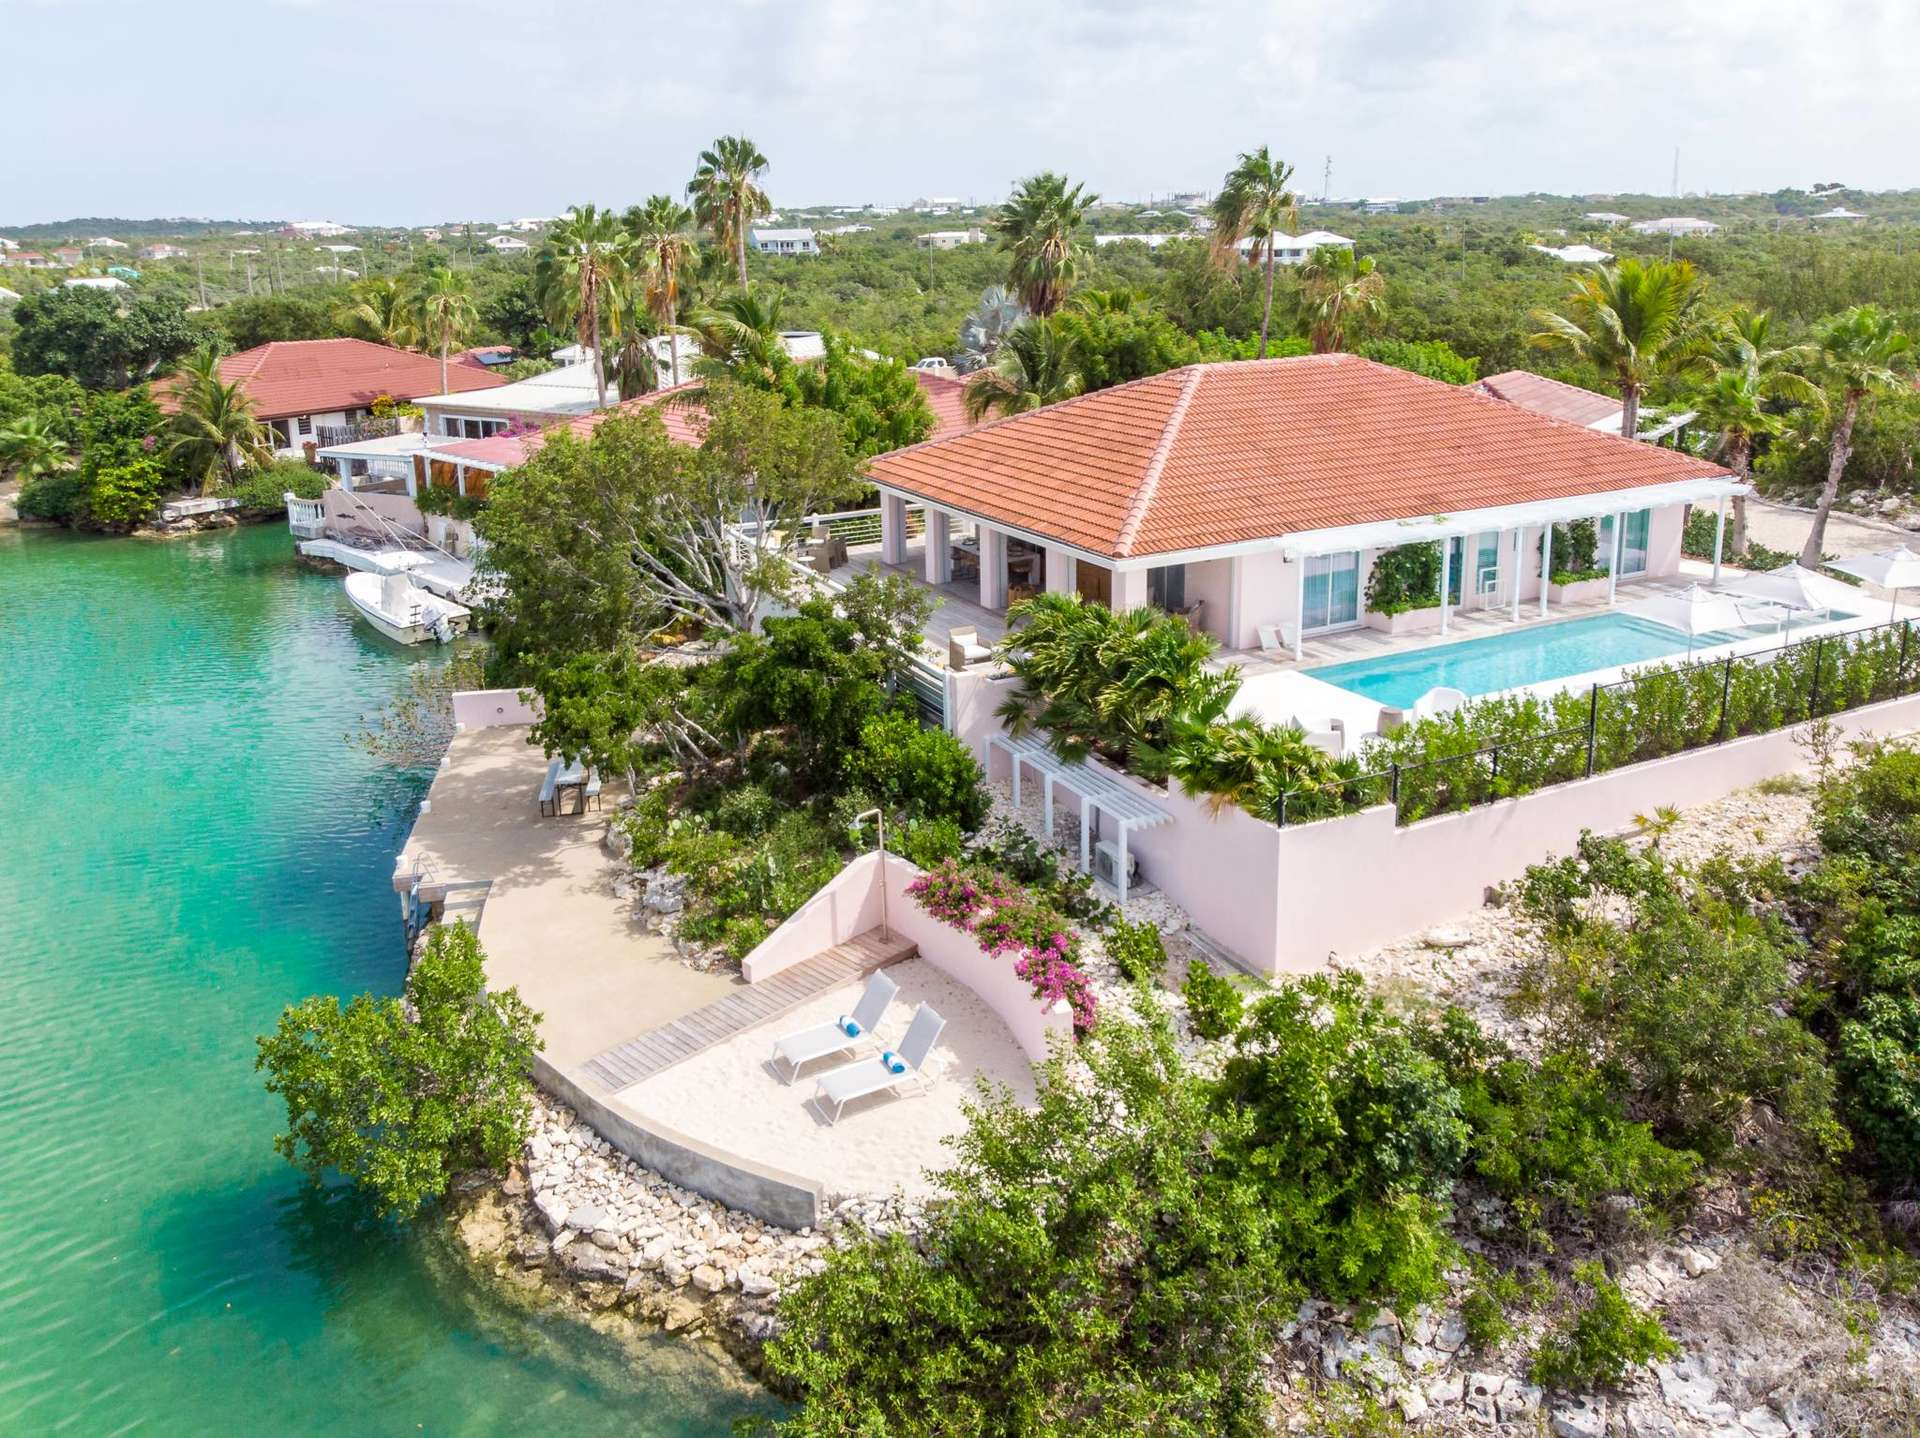 Luxury villa rentals caribbean - Turks and caicos - Providenciales - Cooper jackbaysettlement - Emerald Waters Villa - Image 1/31